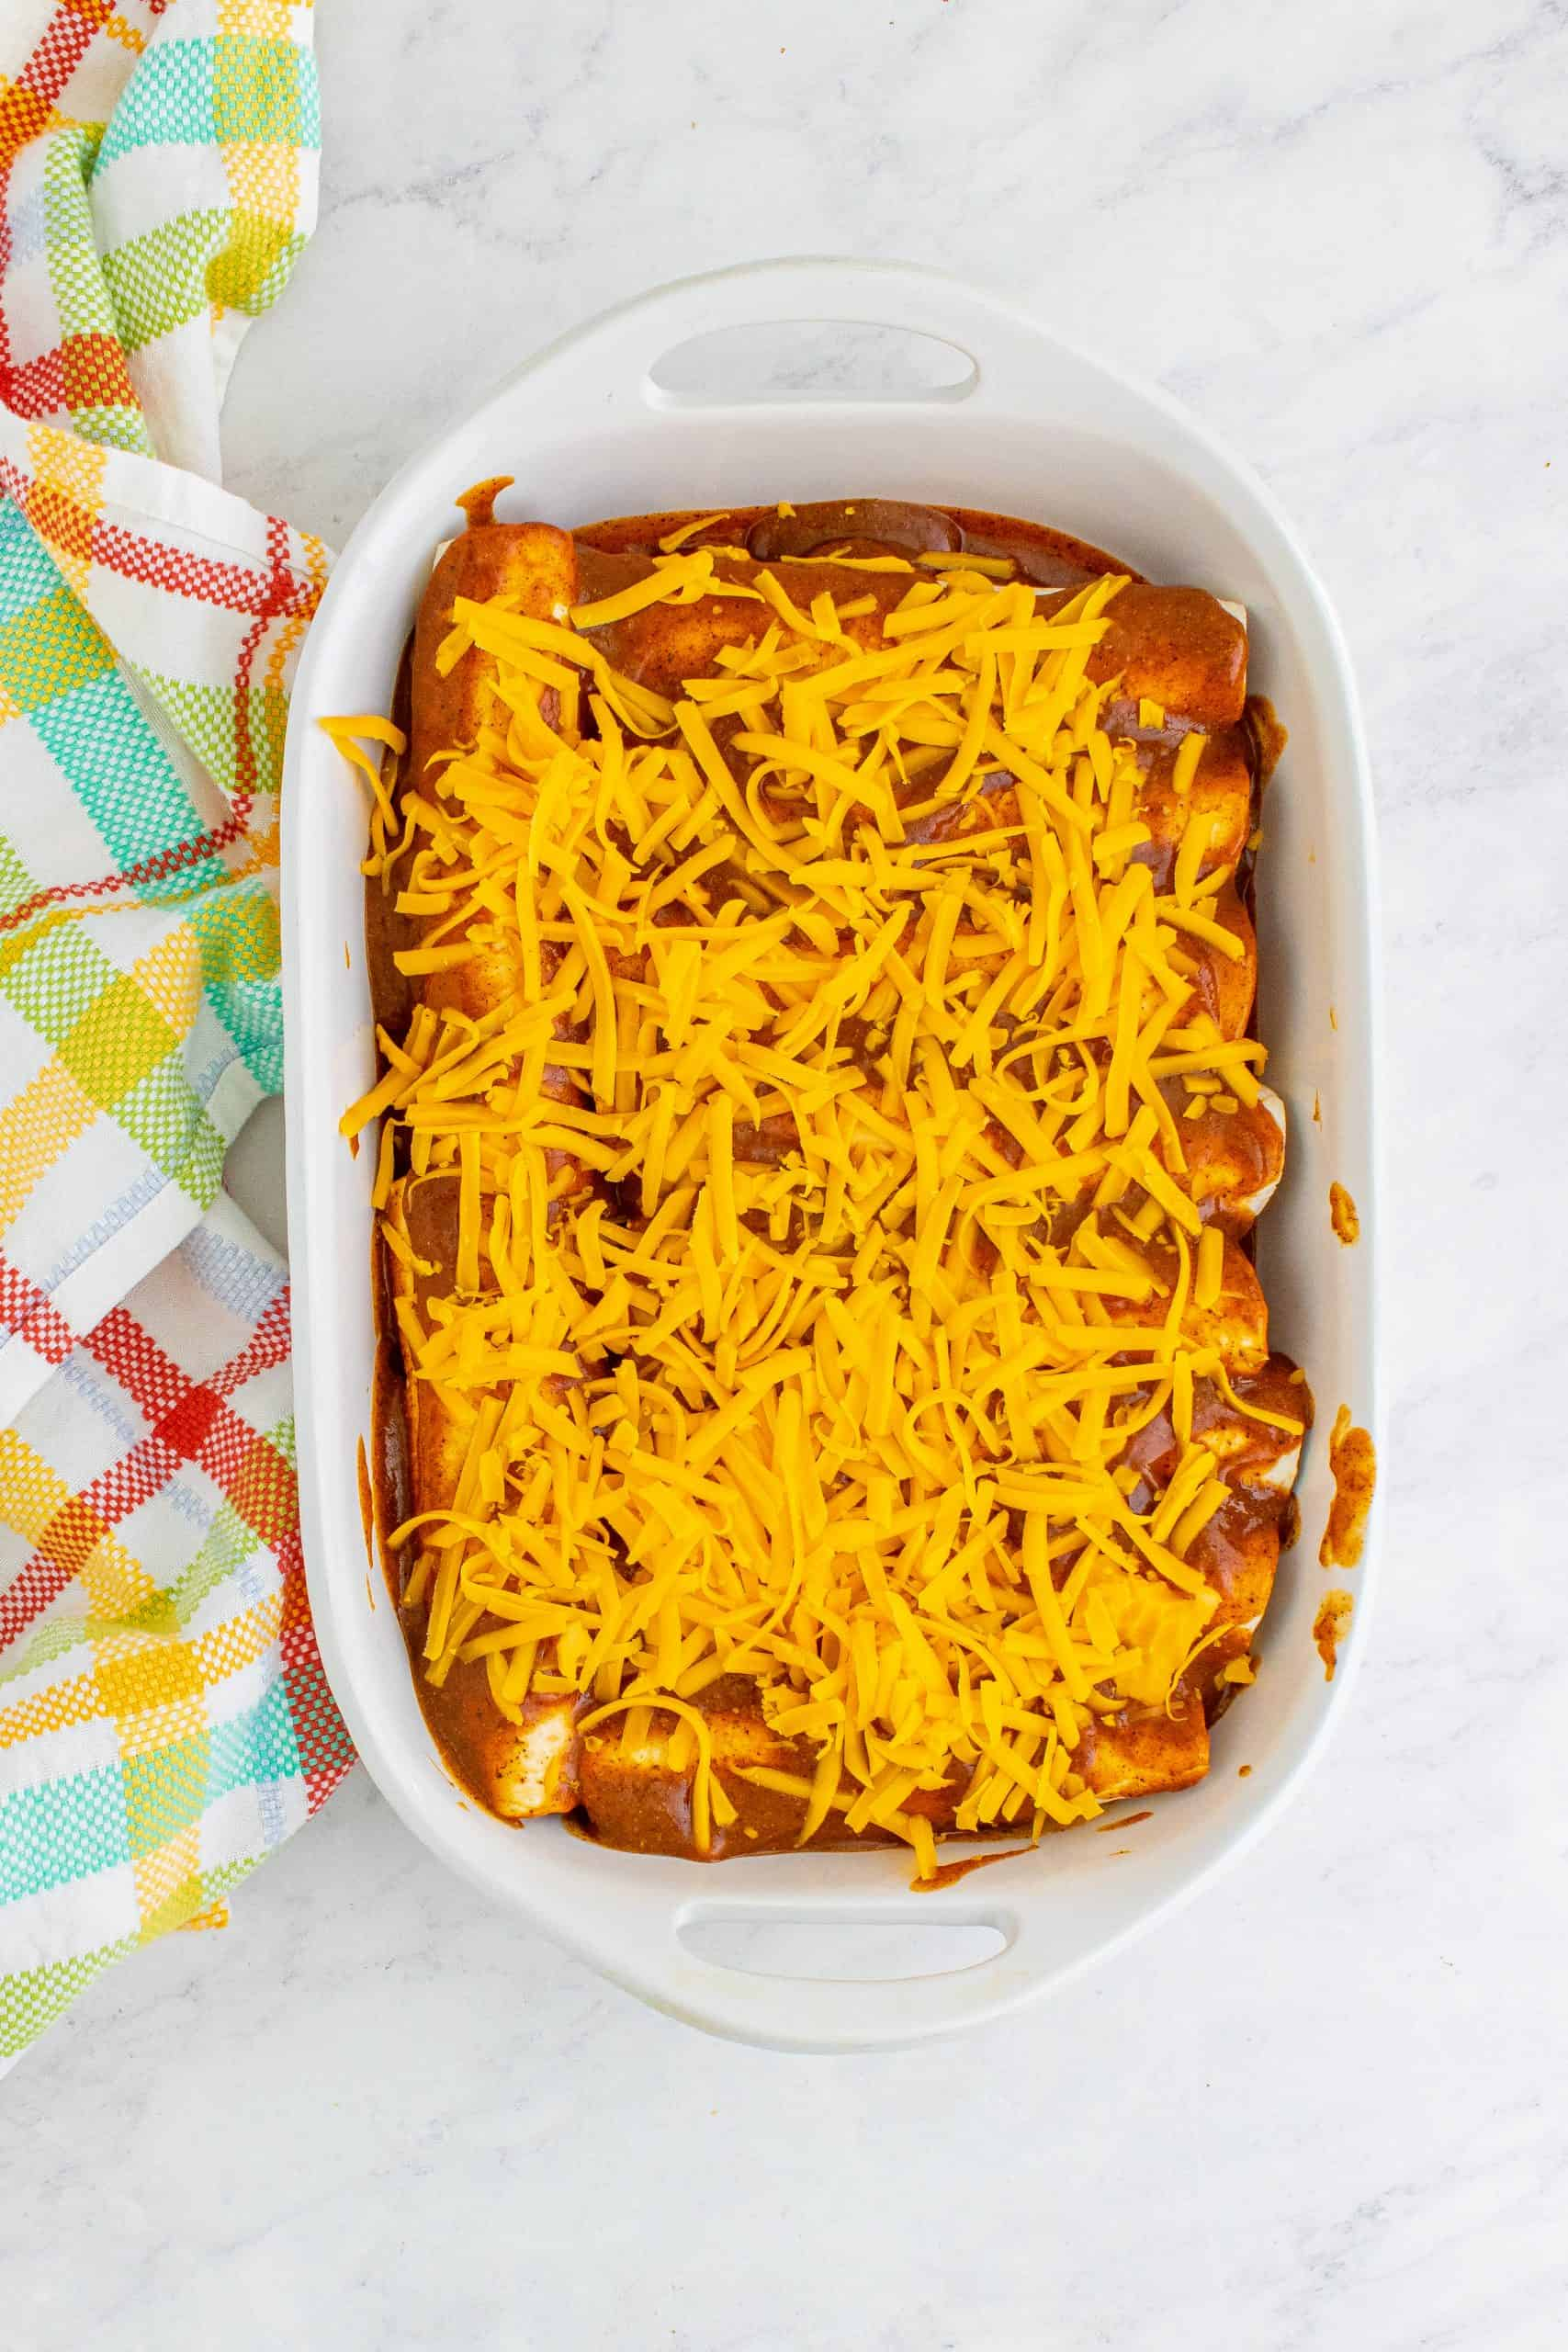 shredded cheddar cheese sprinkled evenly on top of prepared enchiladas in baking dish.